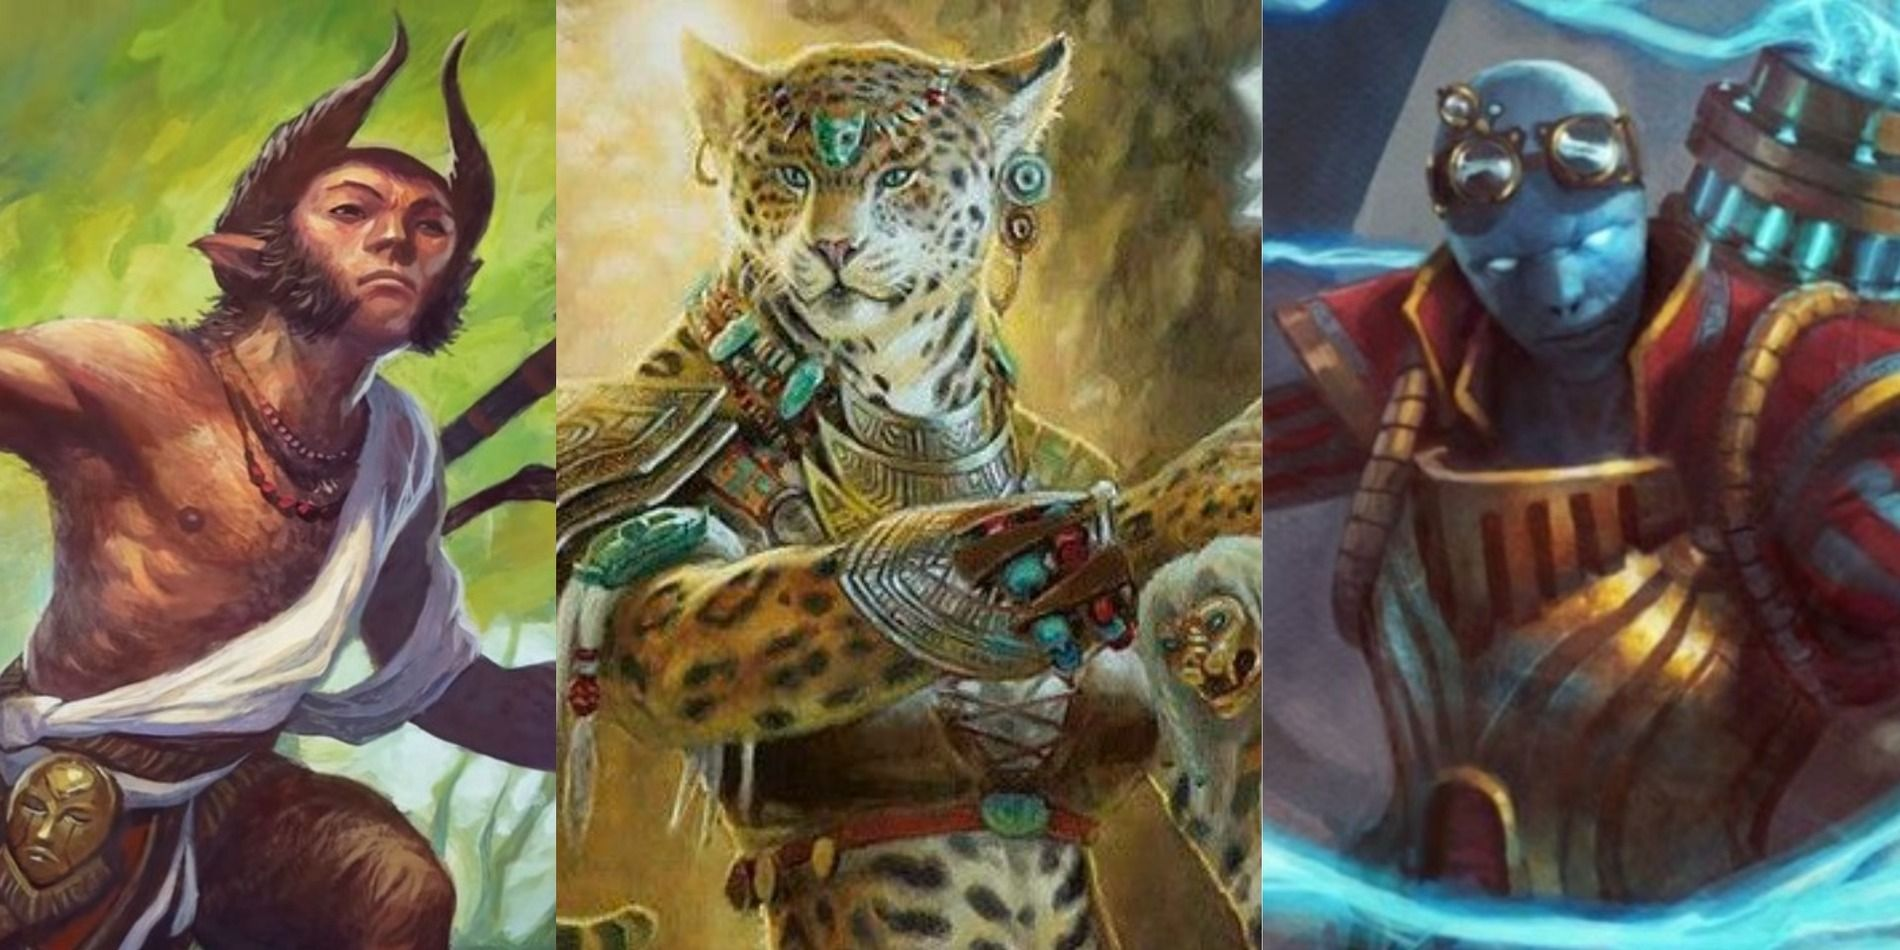 Dungeons & Dragons: 8 Best Subclasses From 5e Expansions